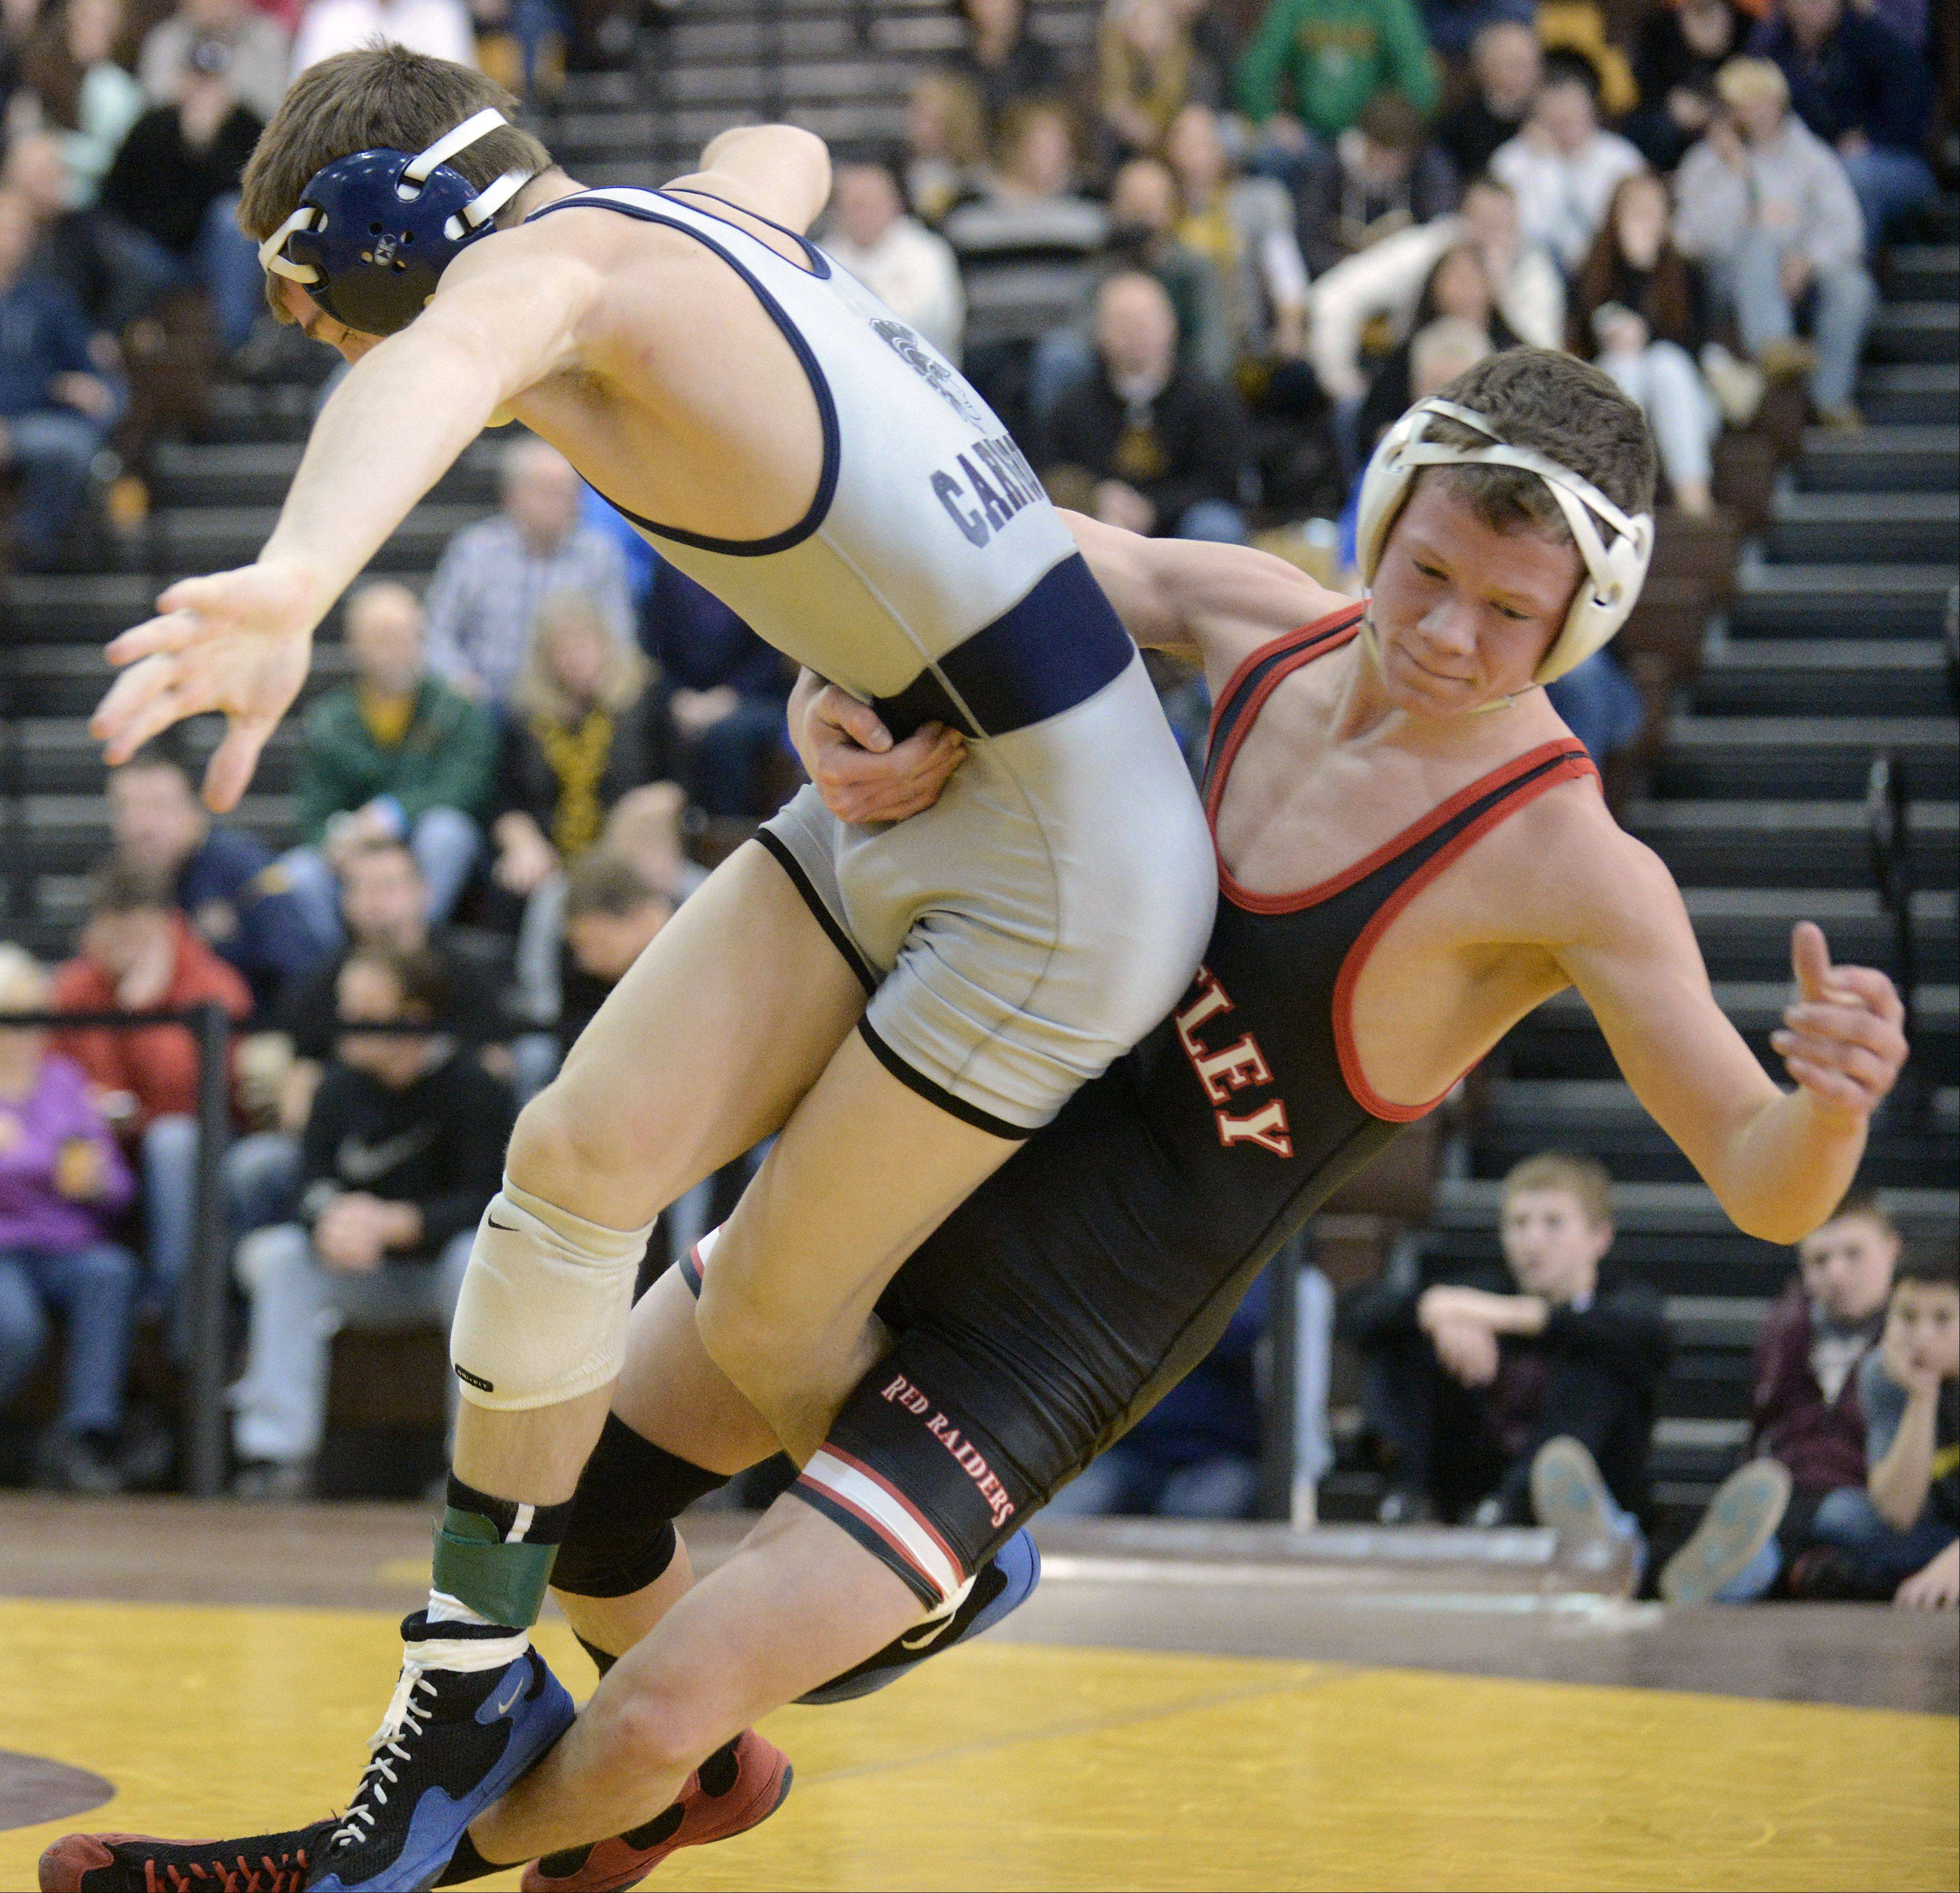 Cary-Grove�s Michael Cullen is pulled down to the mat by Huntley�s Zach Stenger in the 113-pound championship match at the Fox Valley Conference finals on Saturday. Cullen took the win.